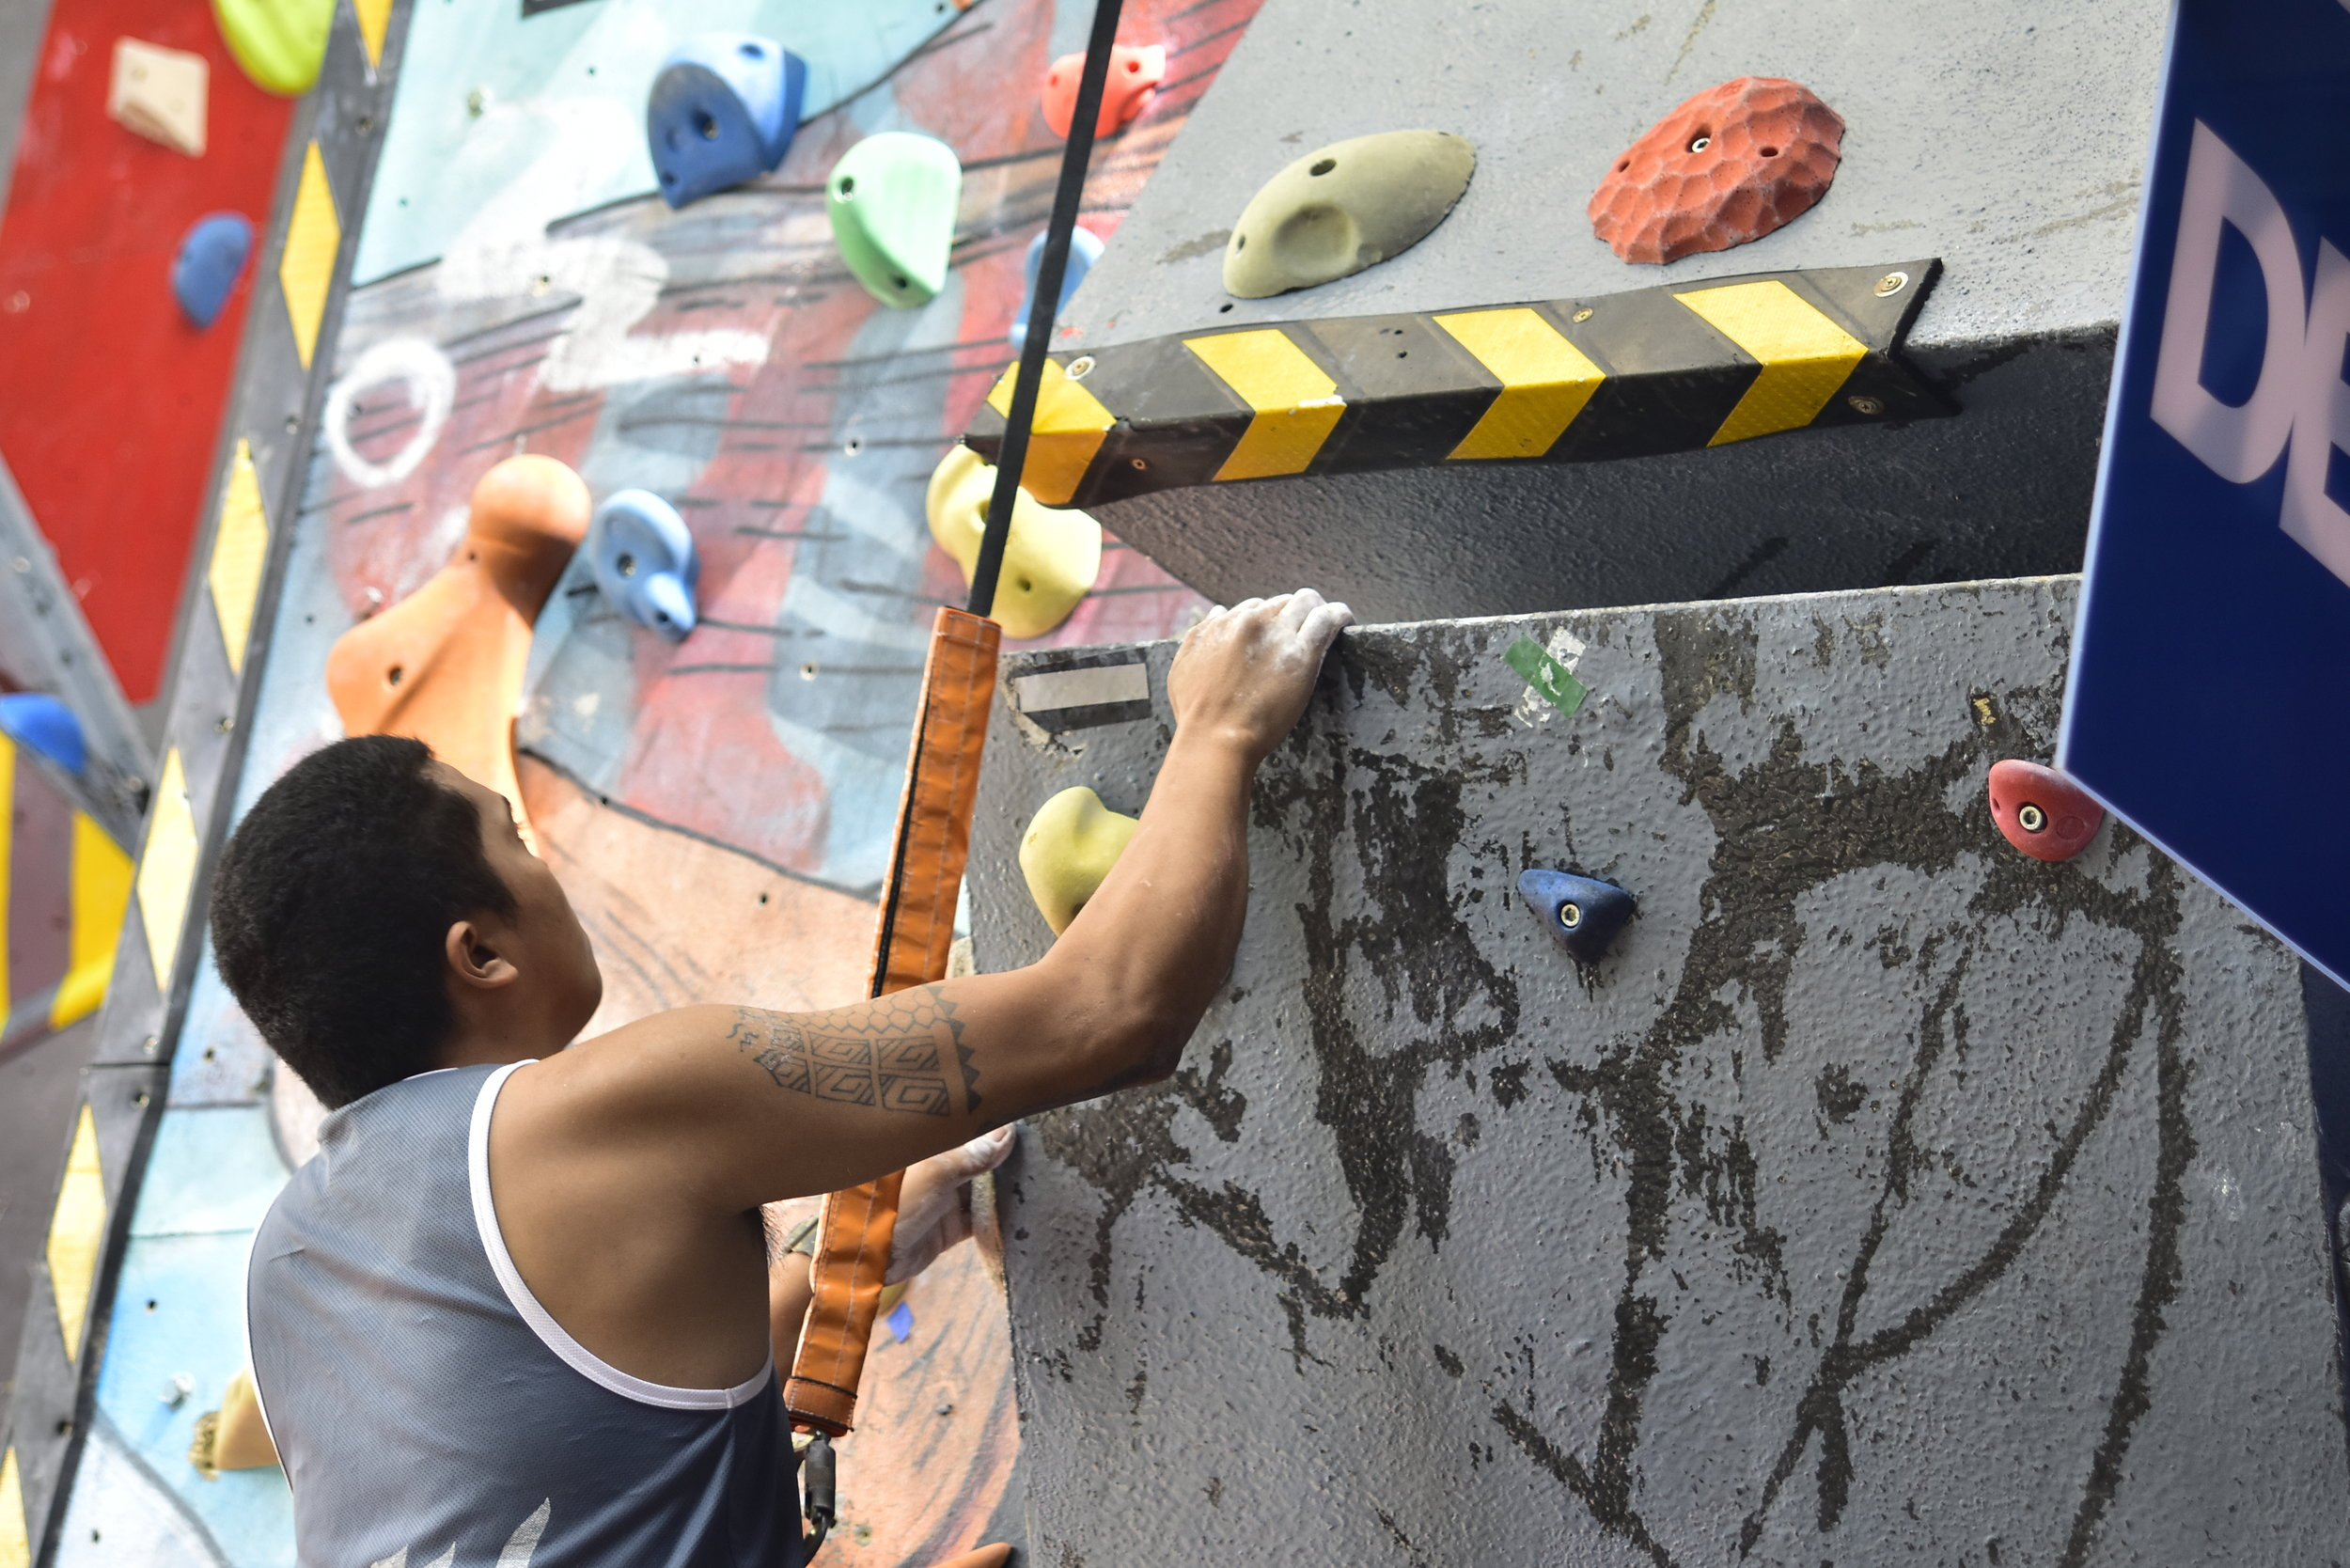 Trainer Jun Vidal is trying out the CAMP Chalk at Push Climbing